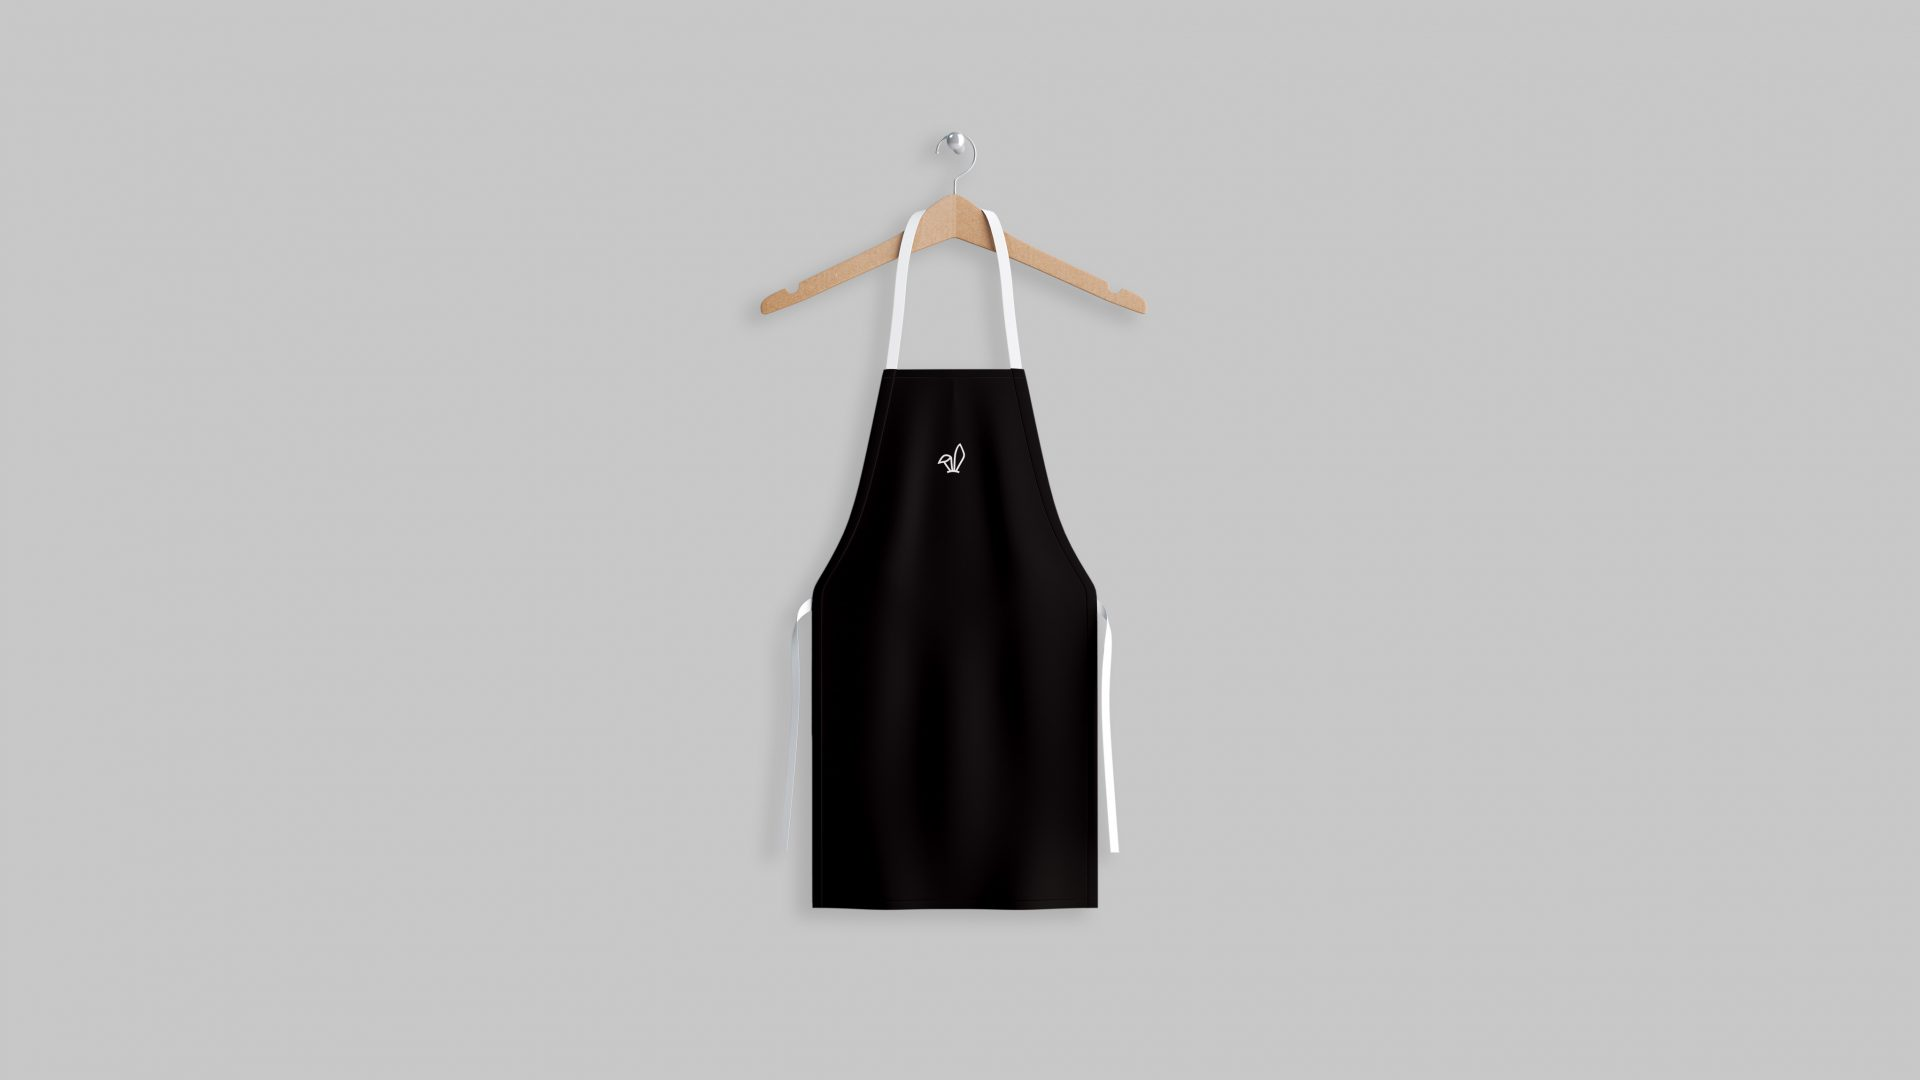 Crate47 Branding forThe Bunny boba tea store – white bunny ears marque on black apron